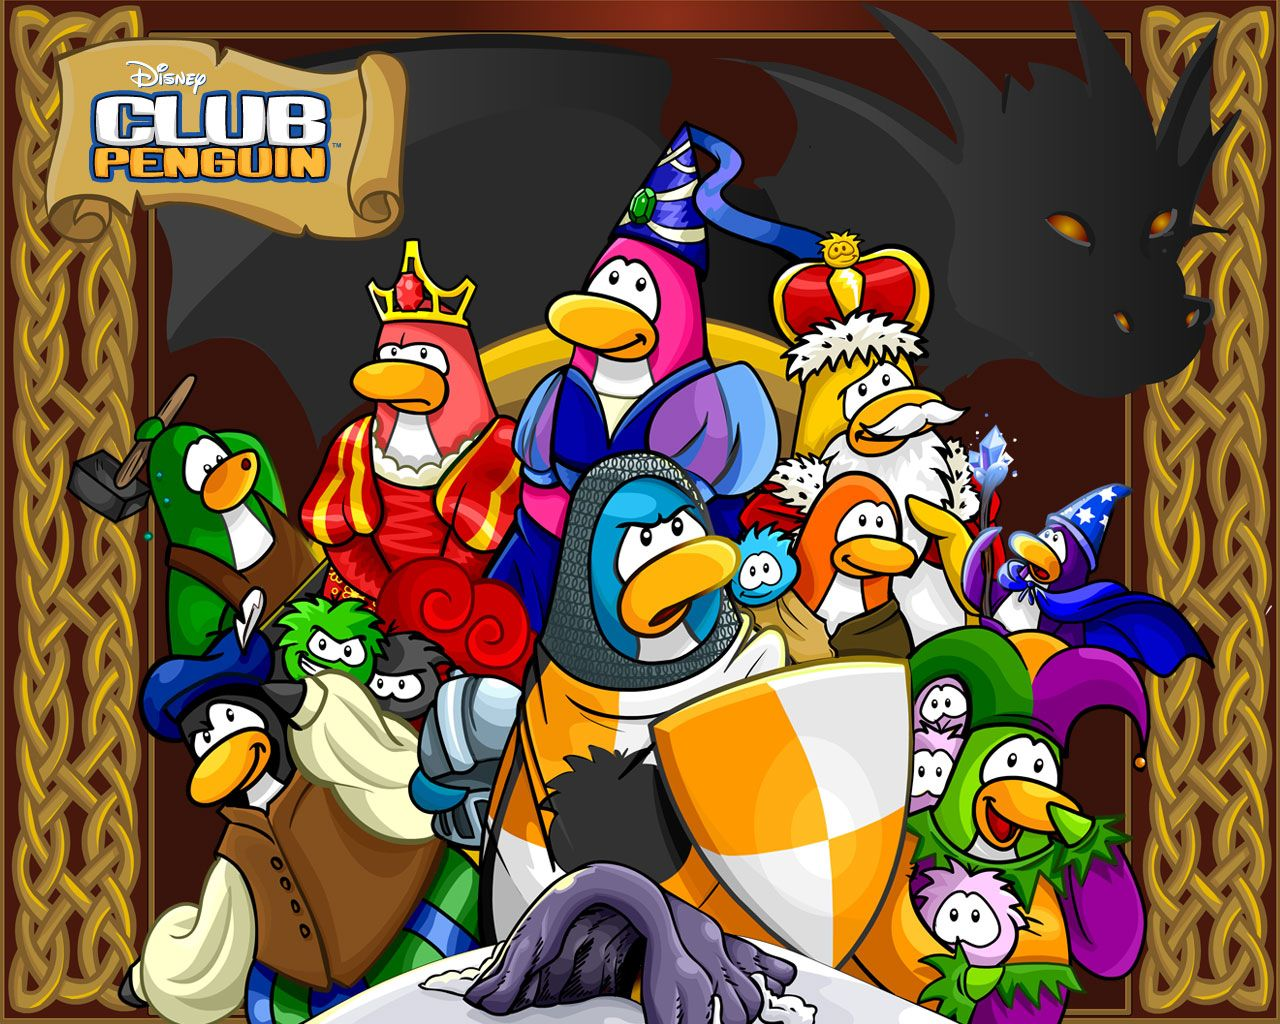 Show me more club penguin epf colouring pages - Club Penguin Wallpapers Club Penguin Help Guide